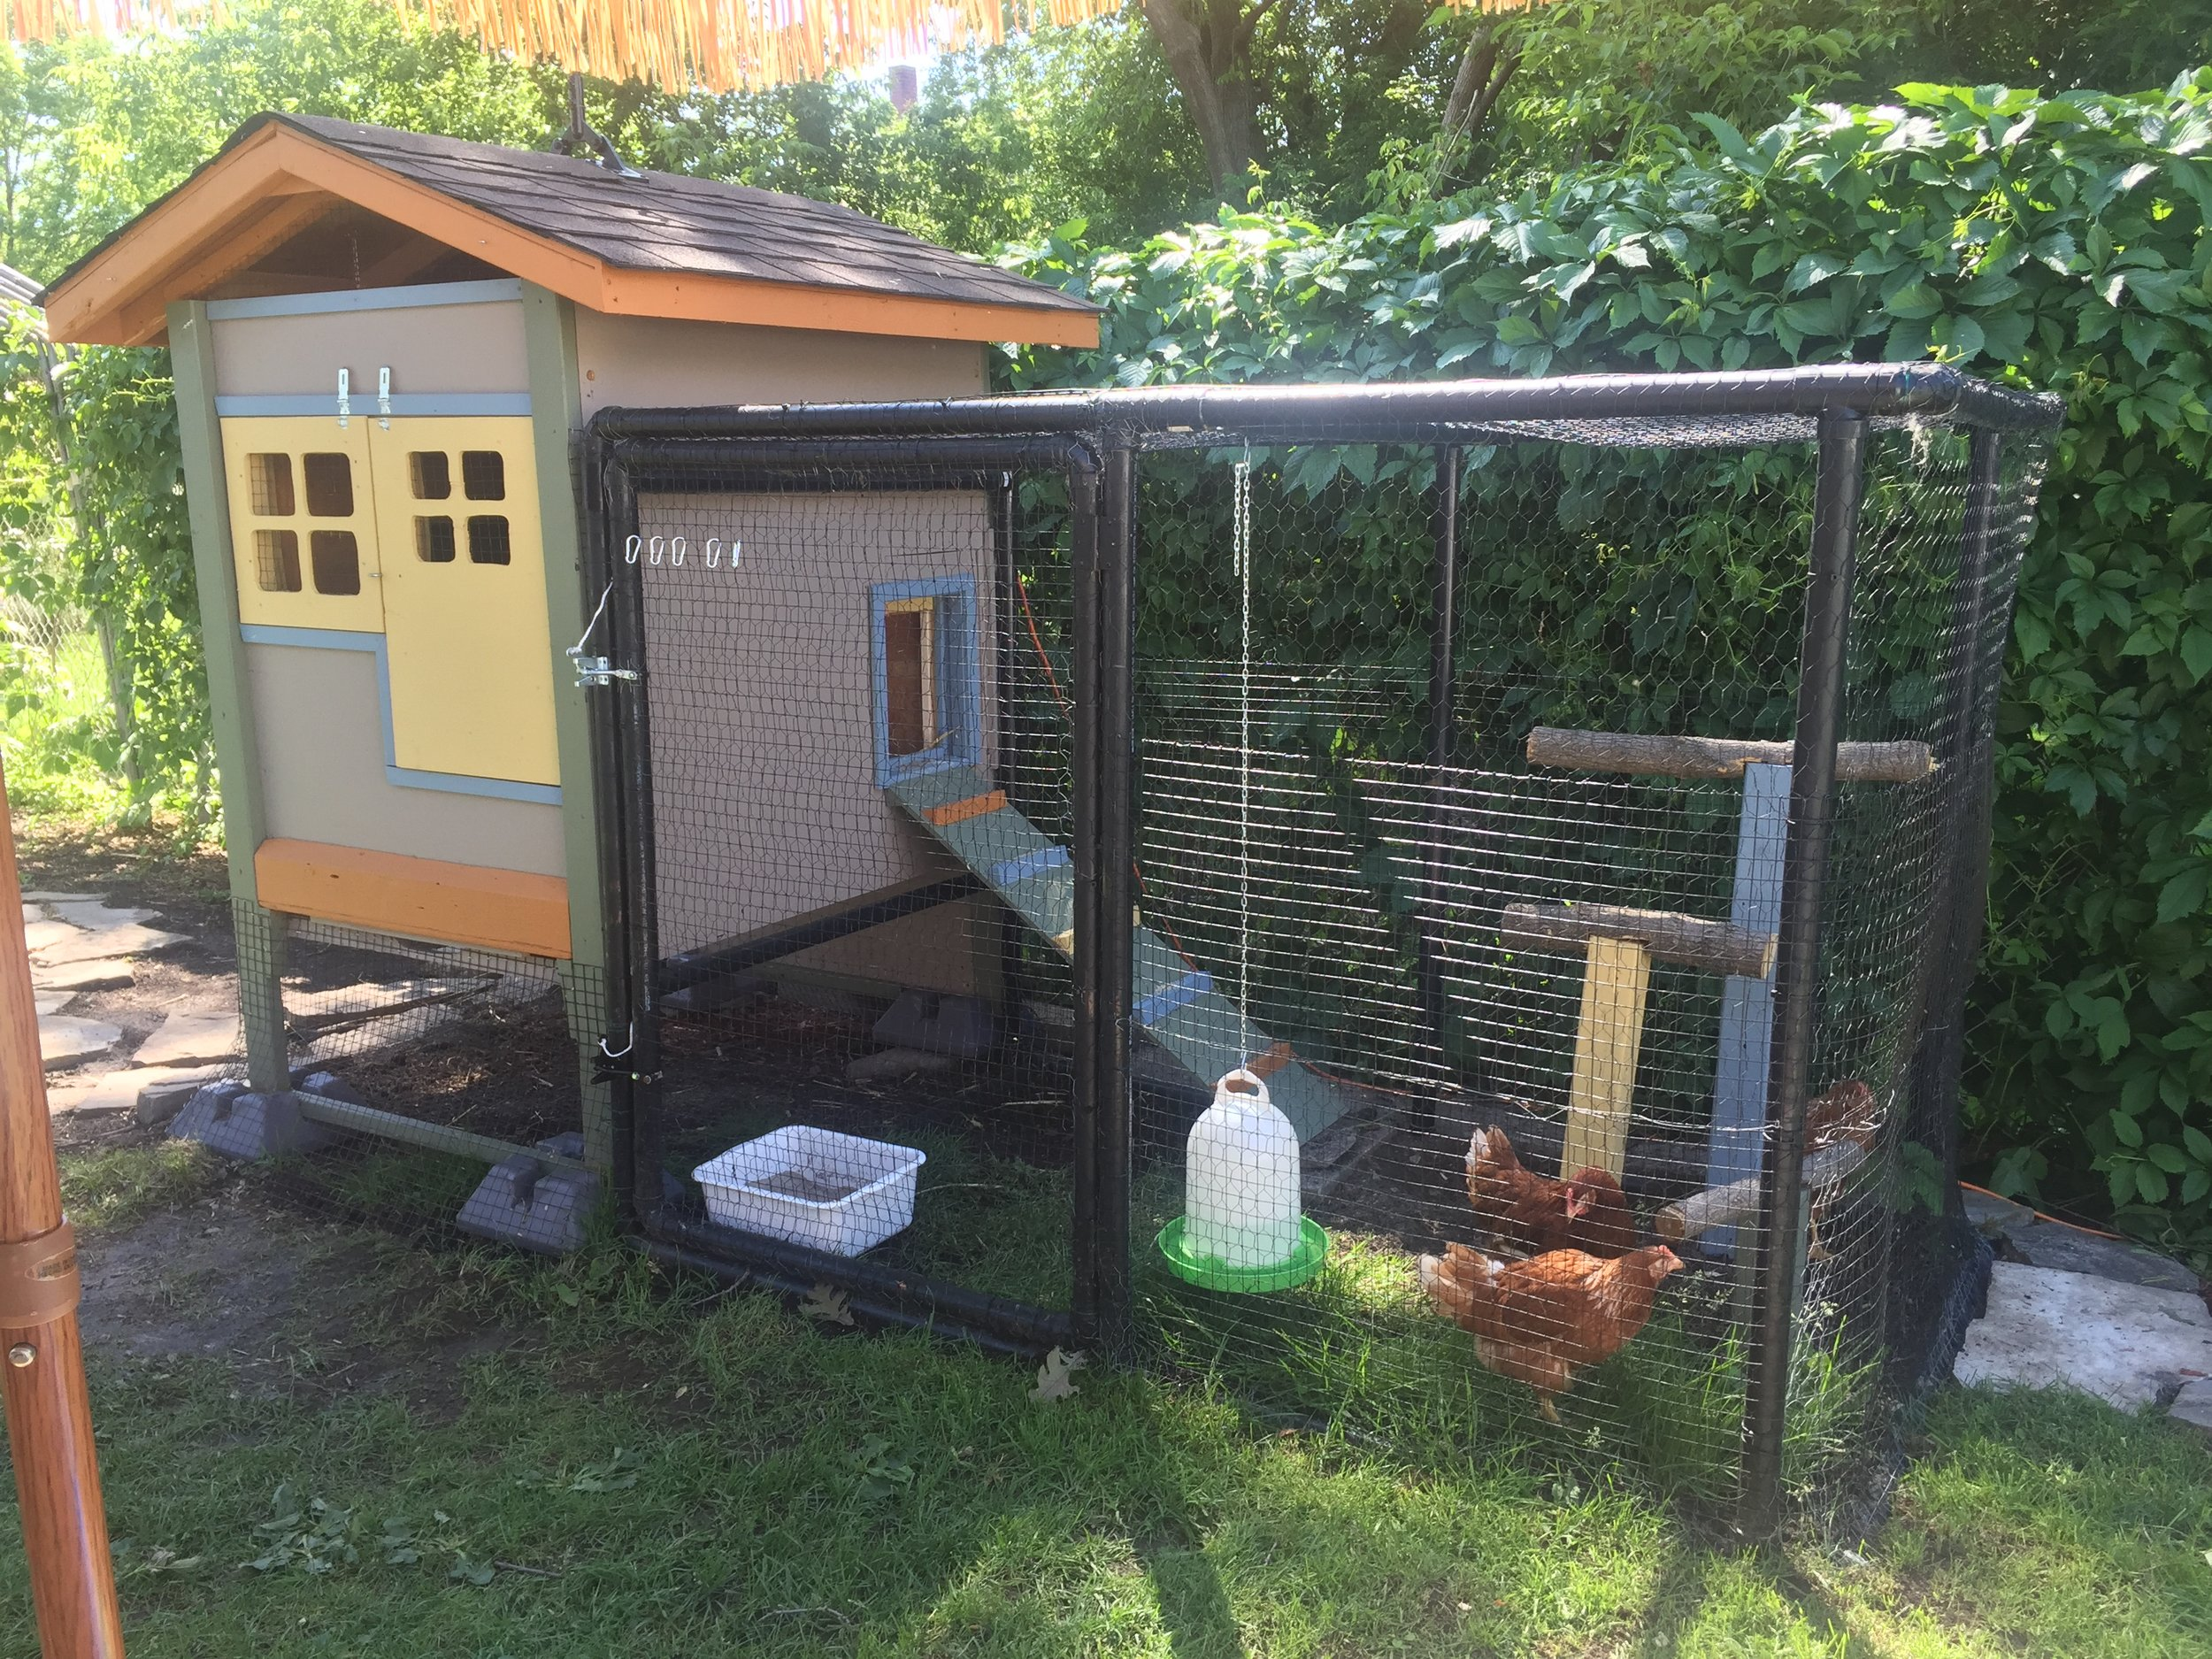 We received our automatic chicken Coop door a few days ago. The installation Was easy and we are very satisfy. Thank You, Mario Hamel Québec Canada